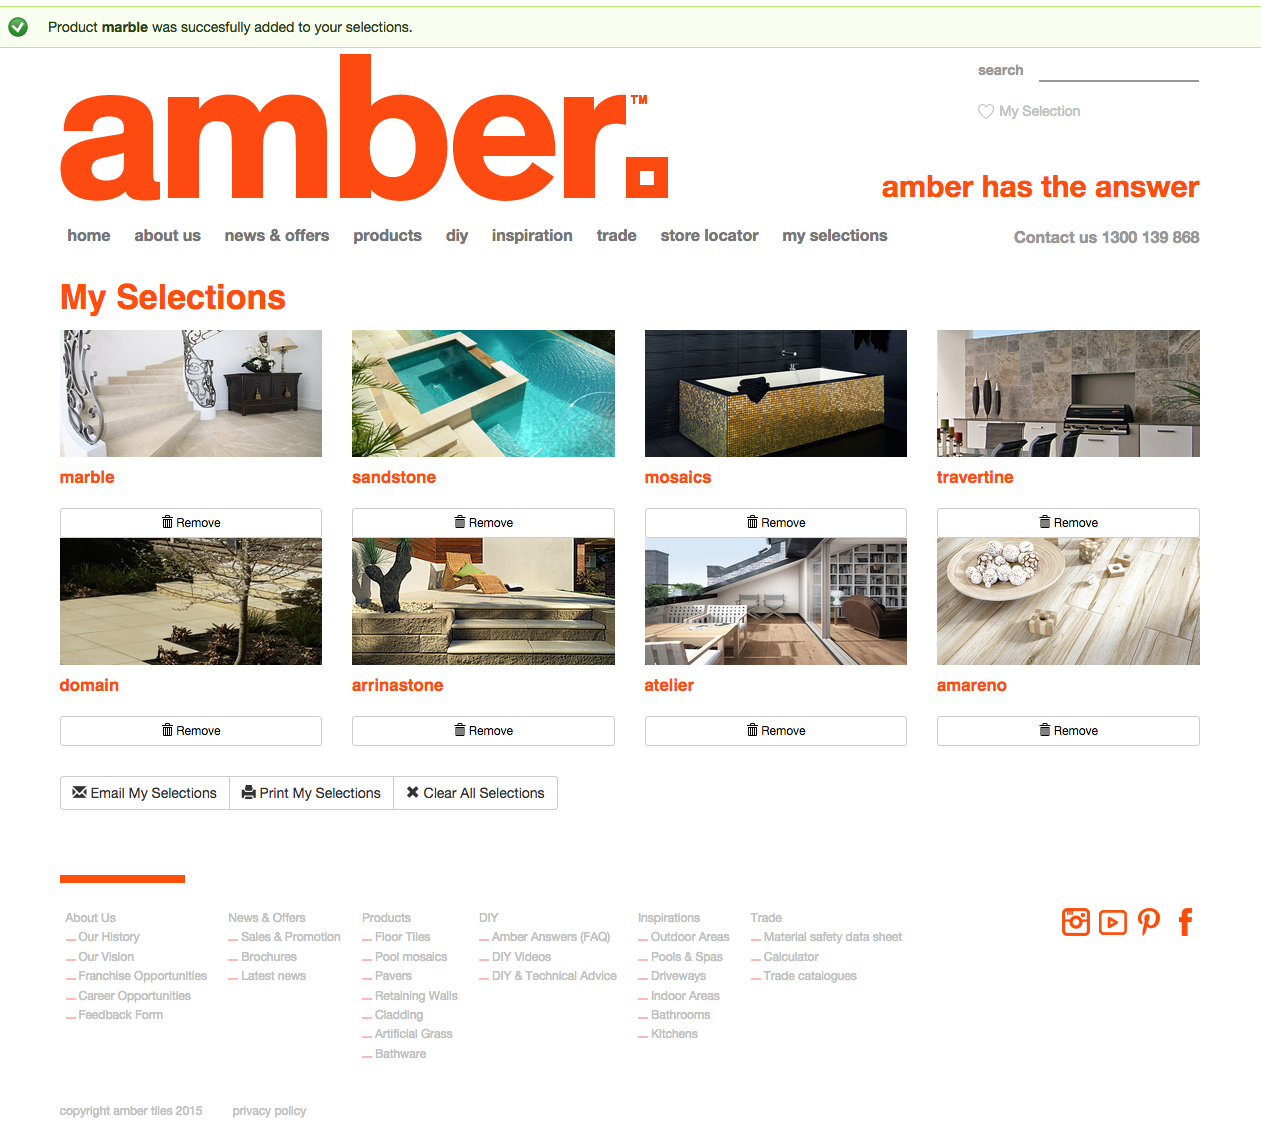 New Amber Tiles Website - My Selection